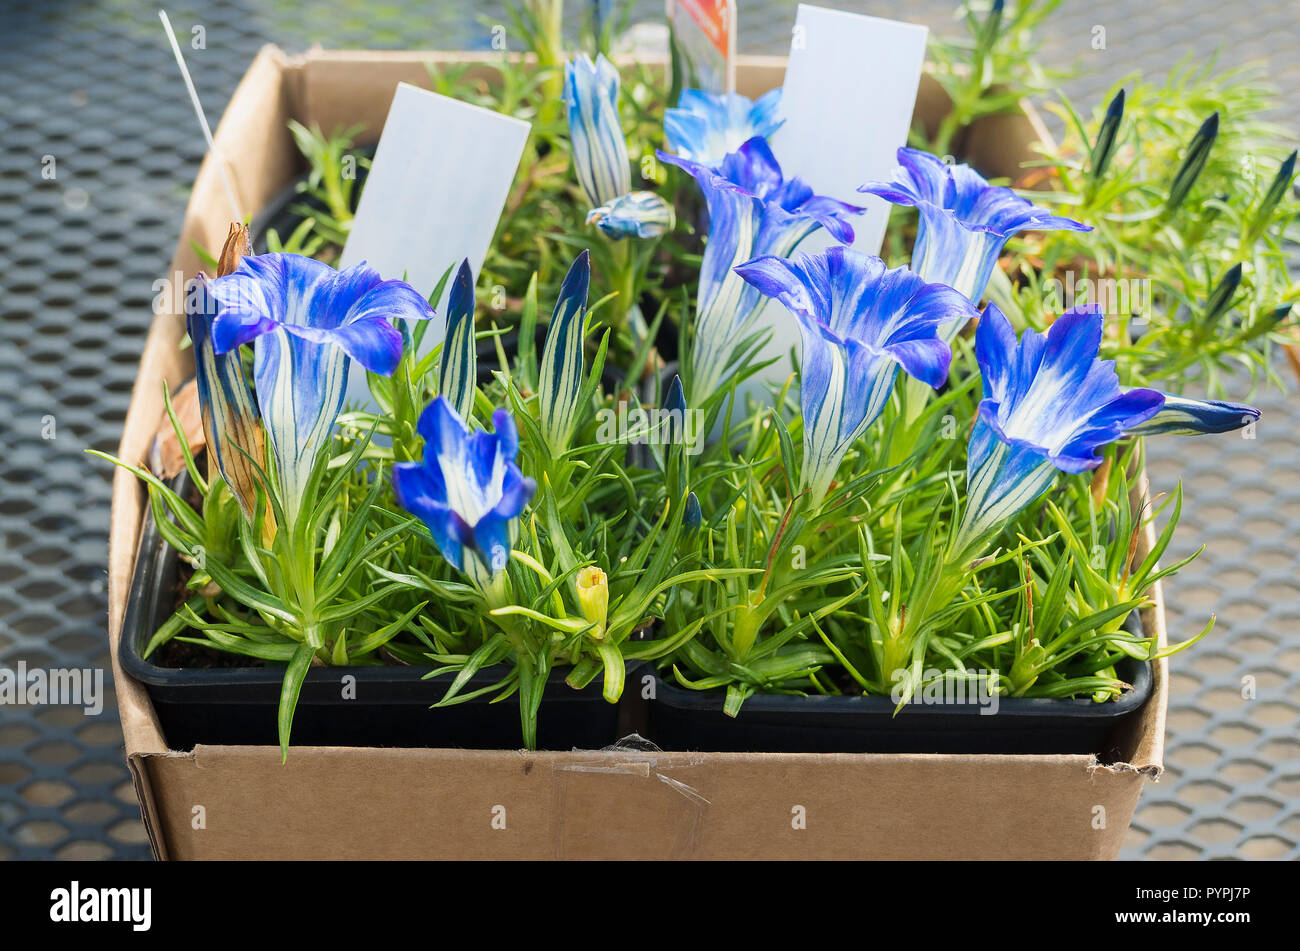 A box of newly-bought Gentian plants ready for planting into an English garden in UK - Stock Image